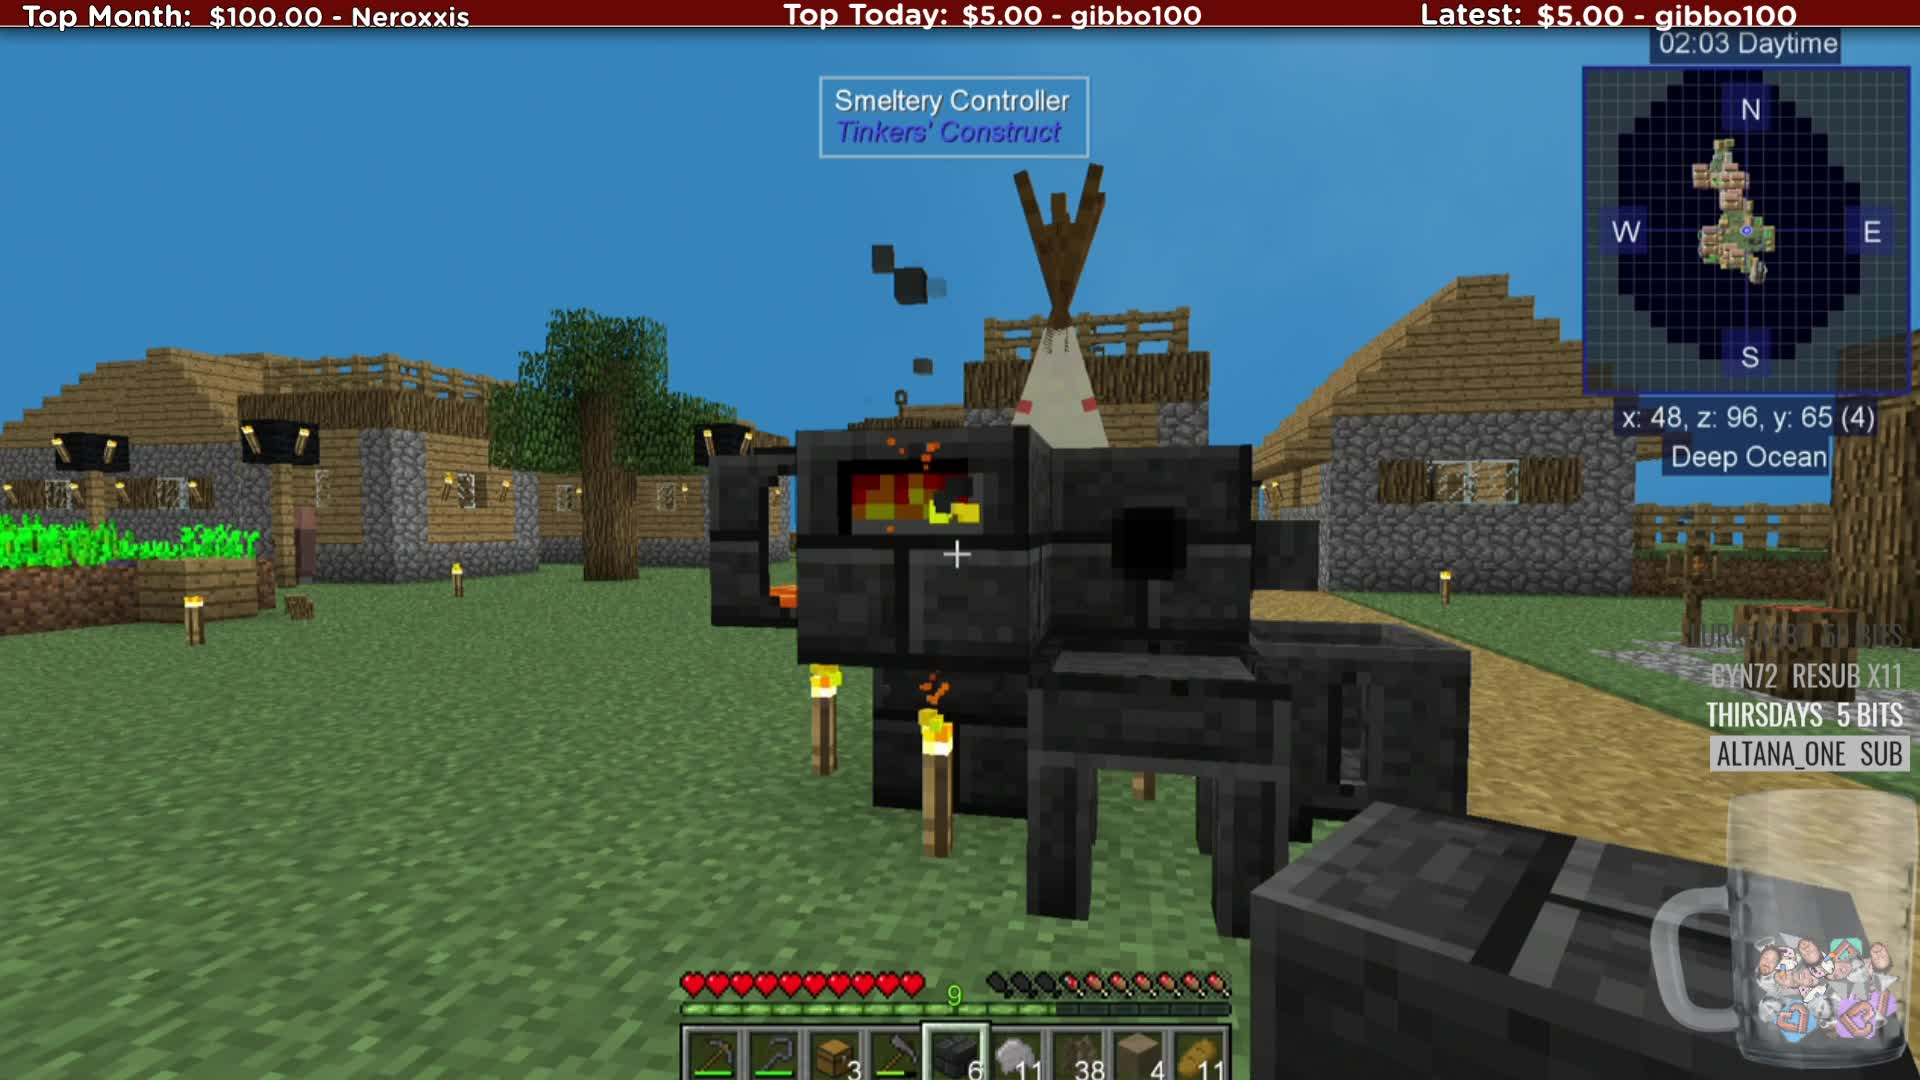 Bacon_Donut - New Sky Factory 4 World!!! ~~ Rated: Families